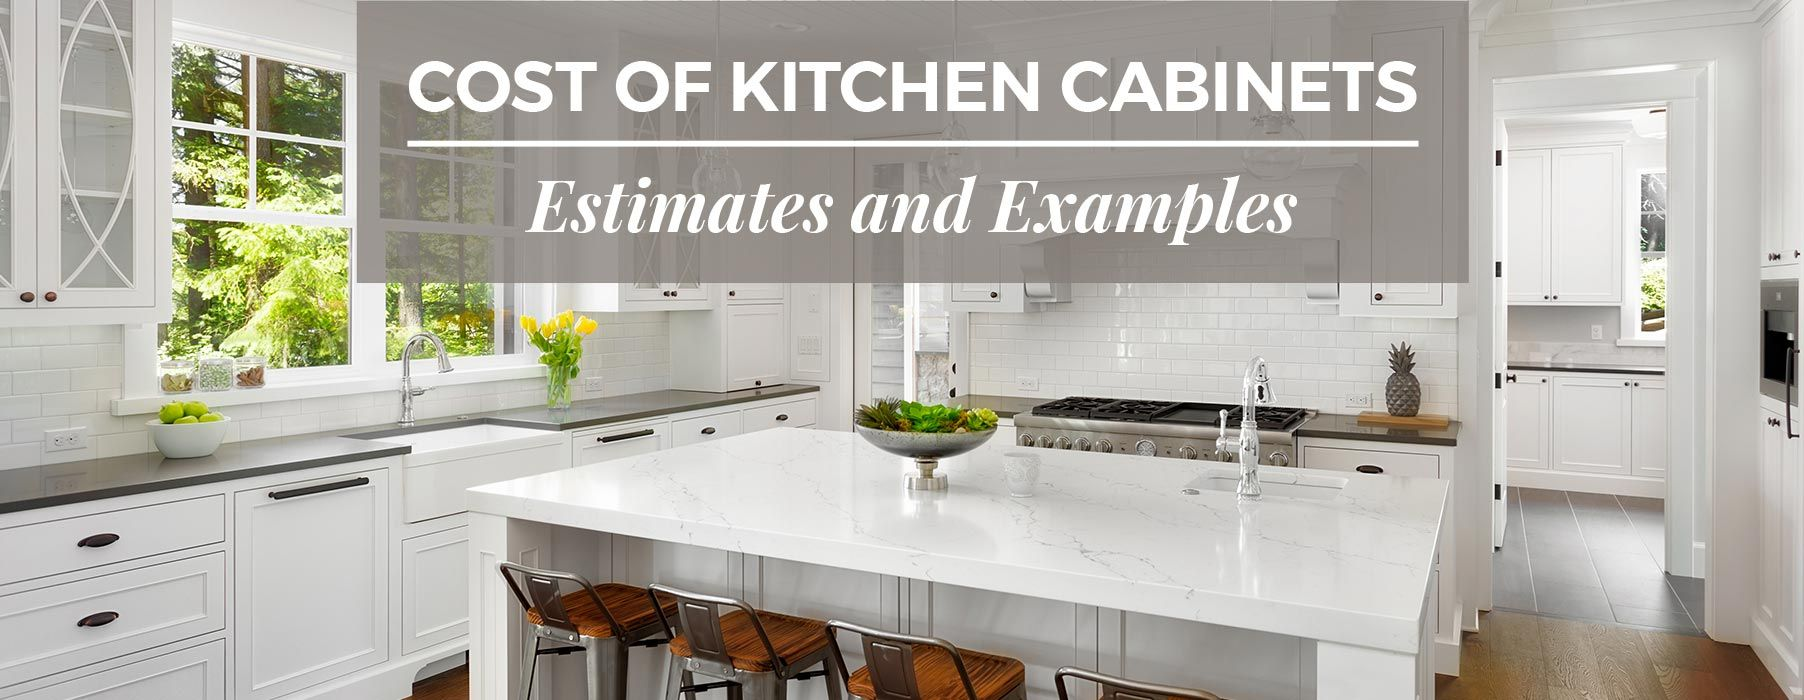 Cost Of Kitchen Cabinets Estimates And